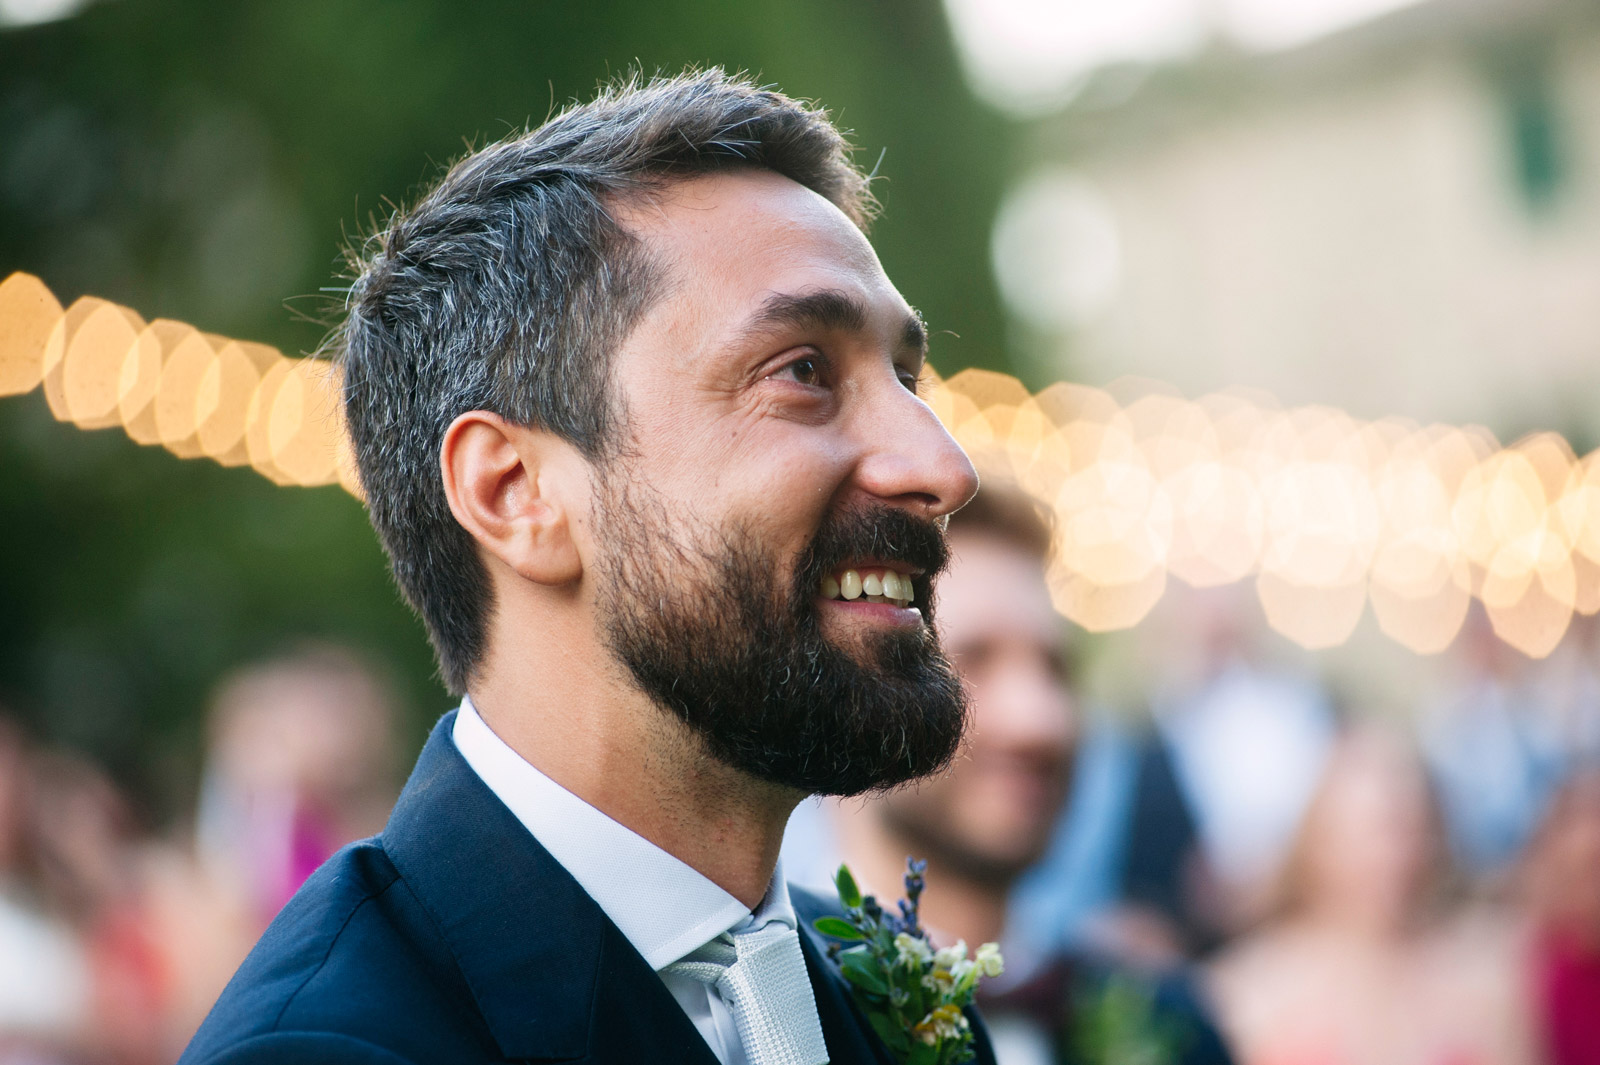 francesco-groom